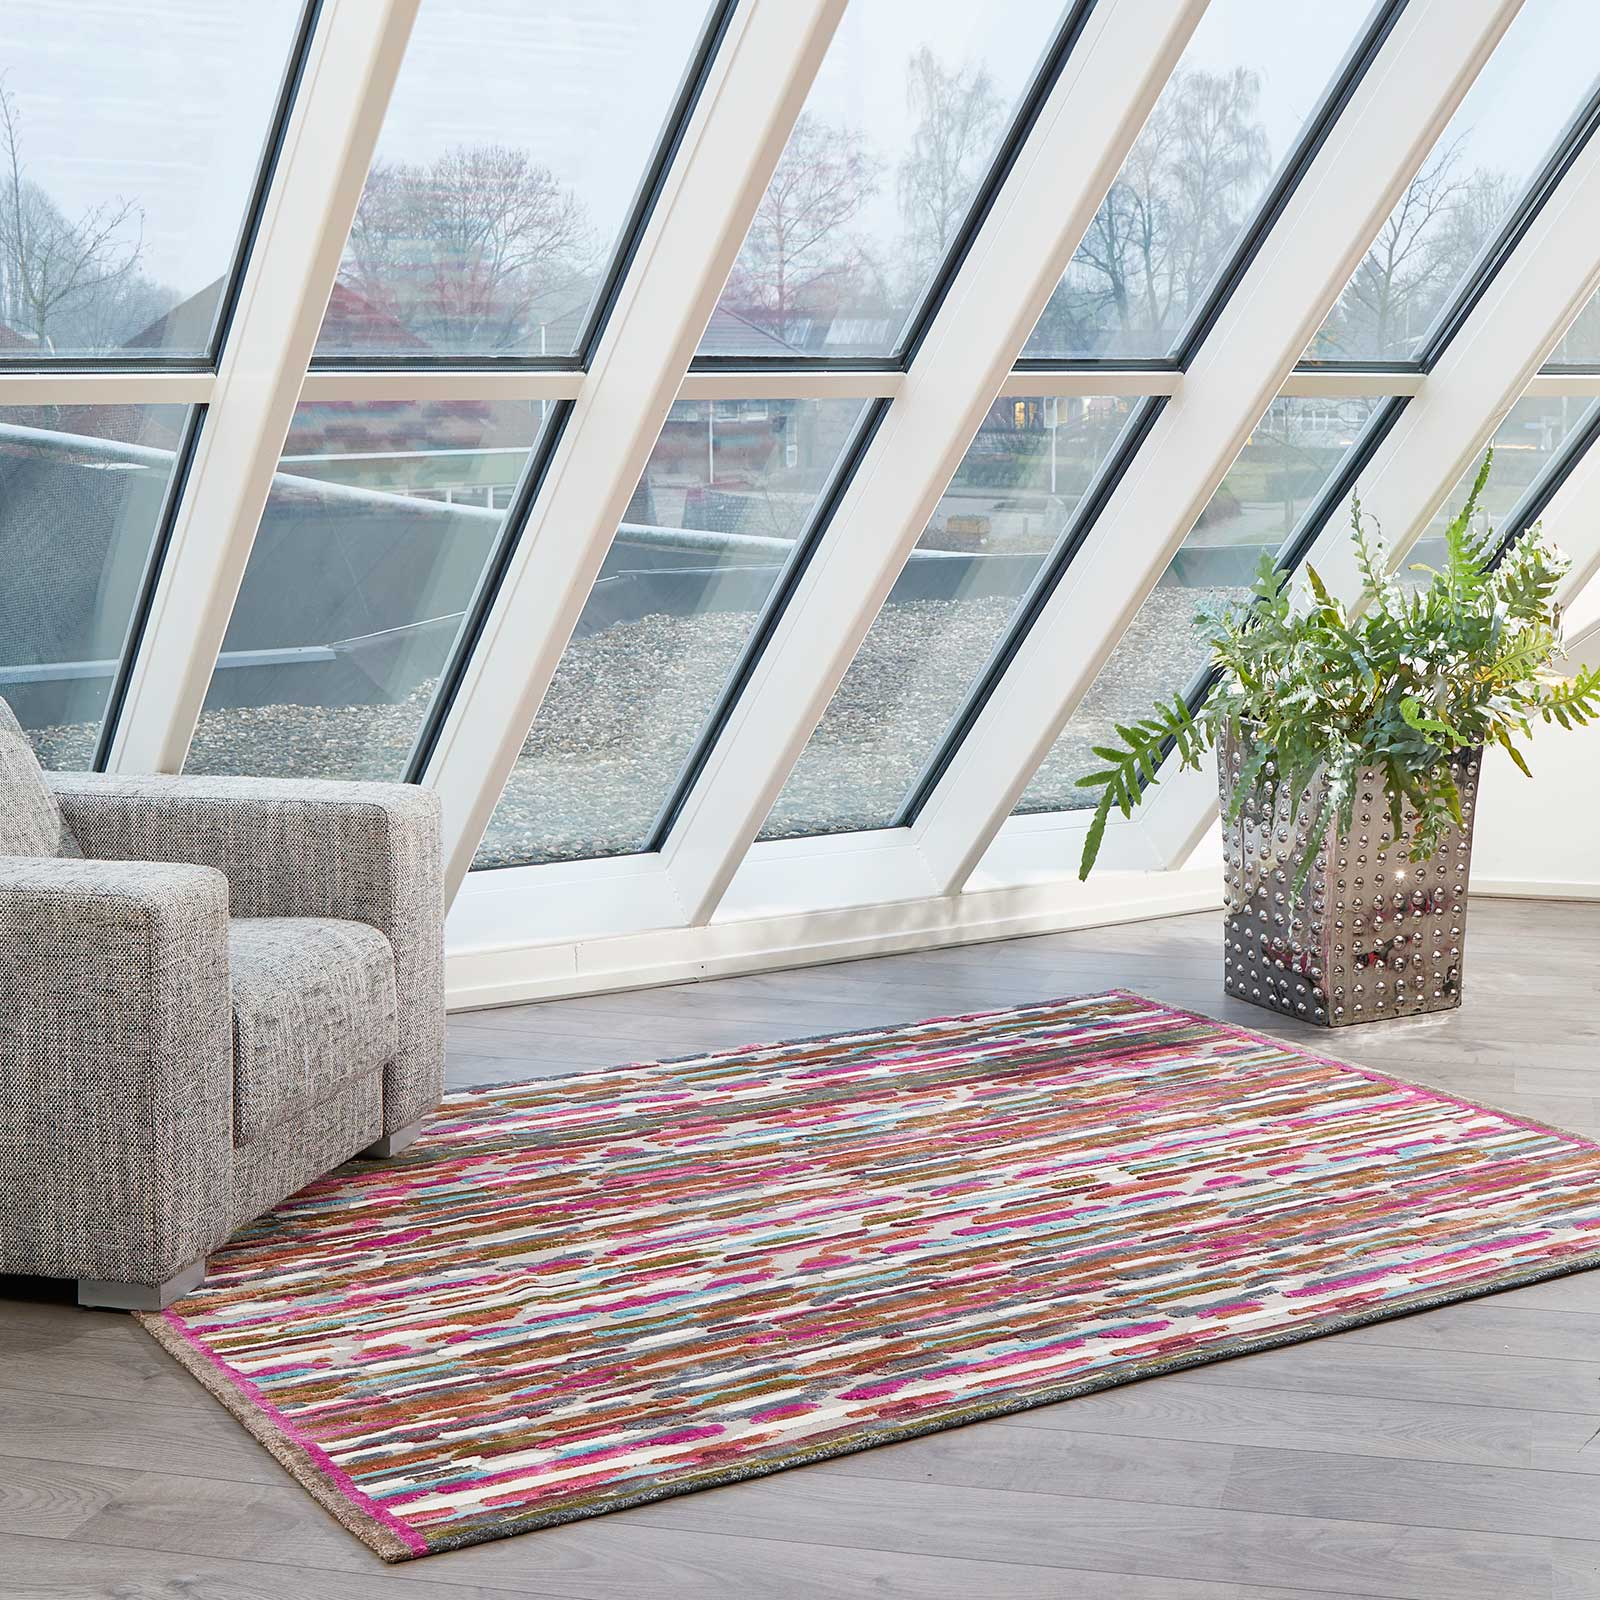 Gaudi Multi-coloured Rugs 3524